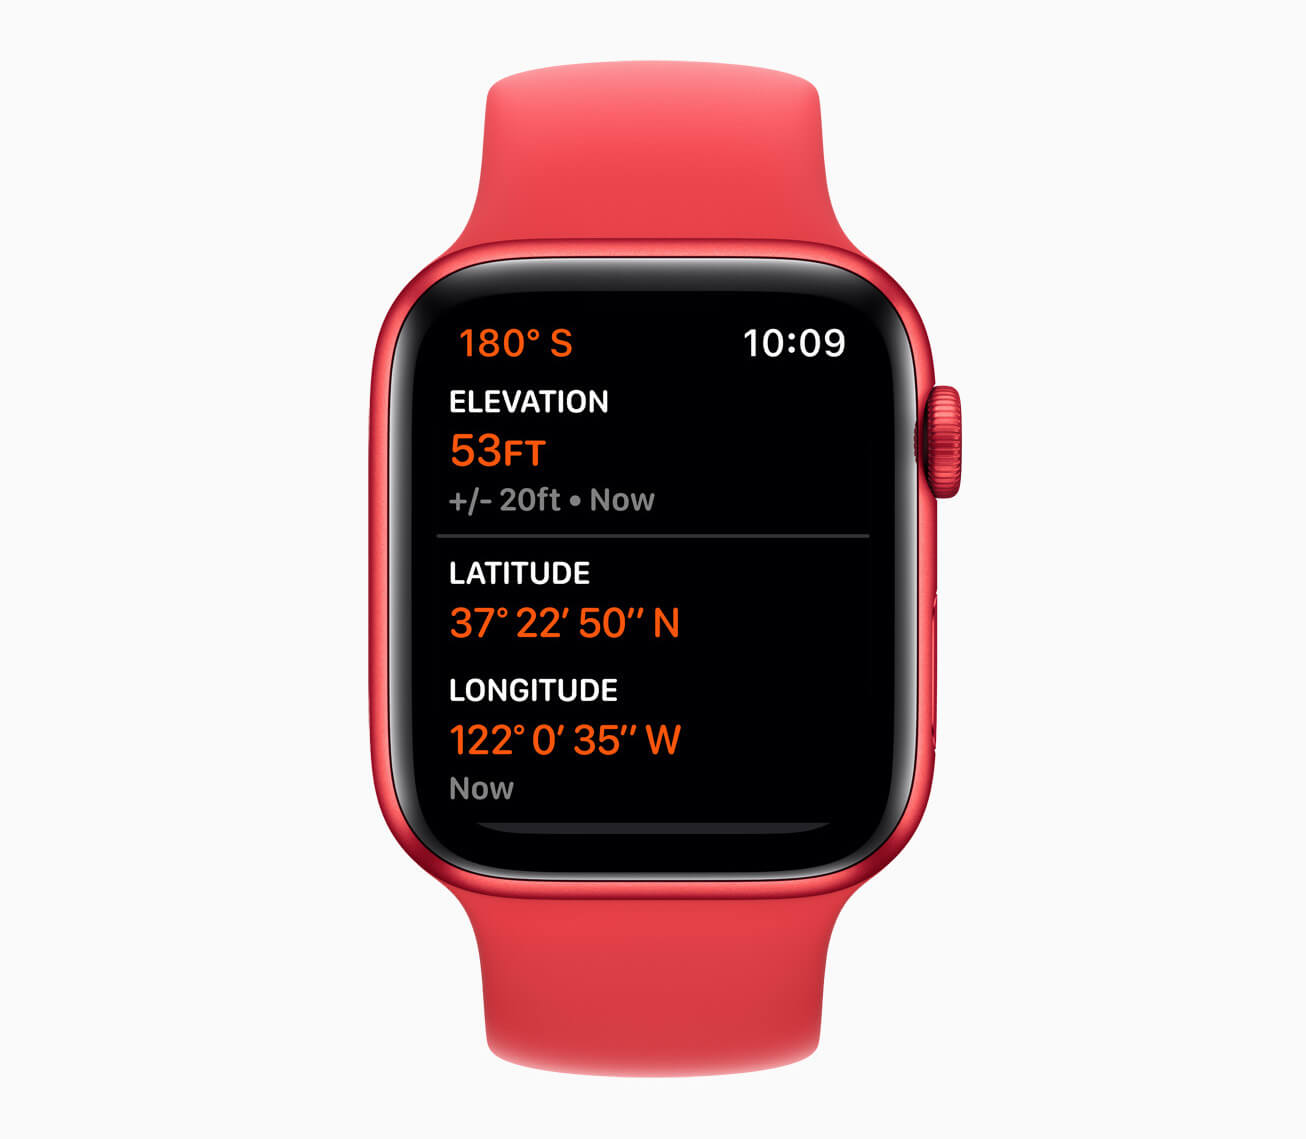 Apple watch series 6 aluminum red case altimeter 09152020